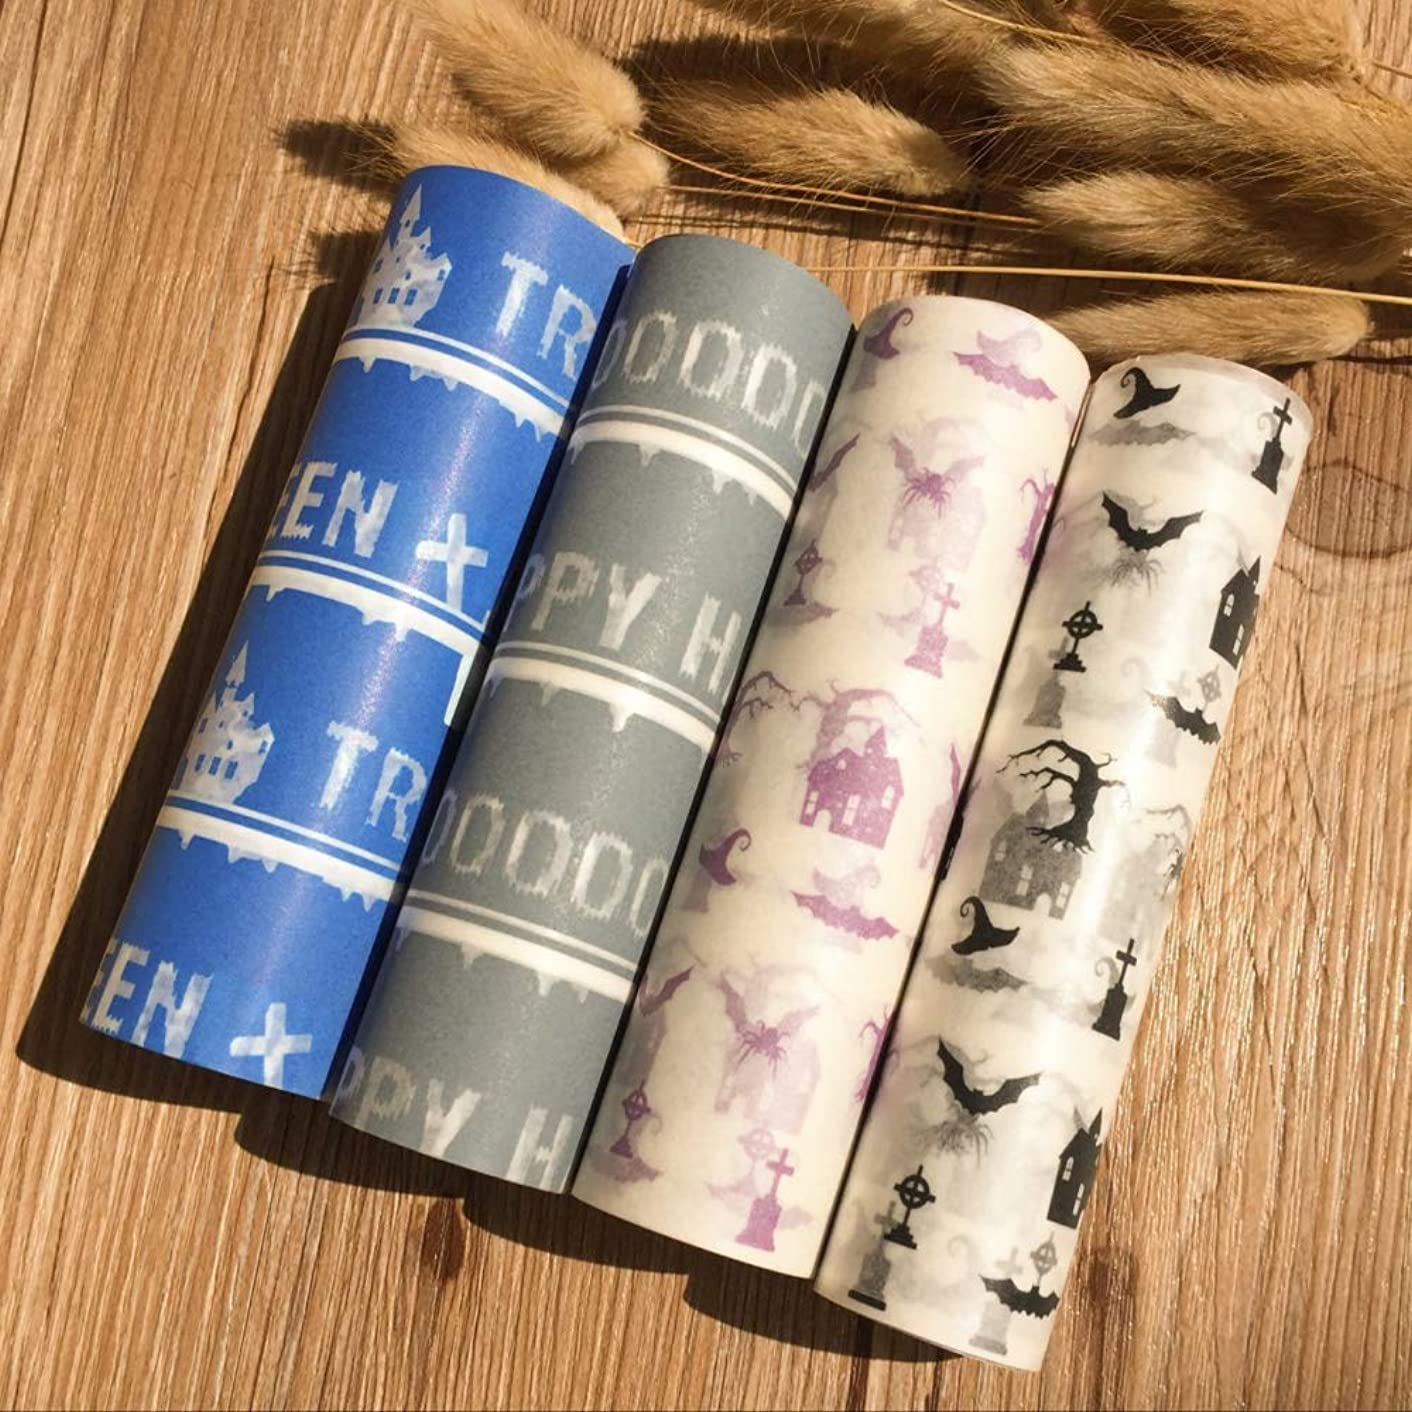 MZJ&J 80 pcs Halloween Wax Paper Food Colored Candy Wax Baking Greaseproof Wrapping Paper 12.5 * 25cm